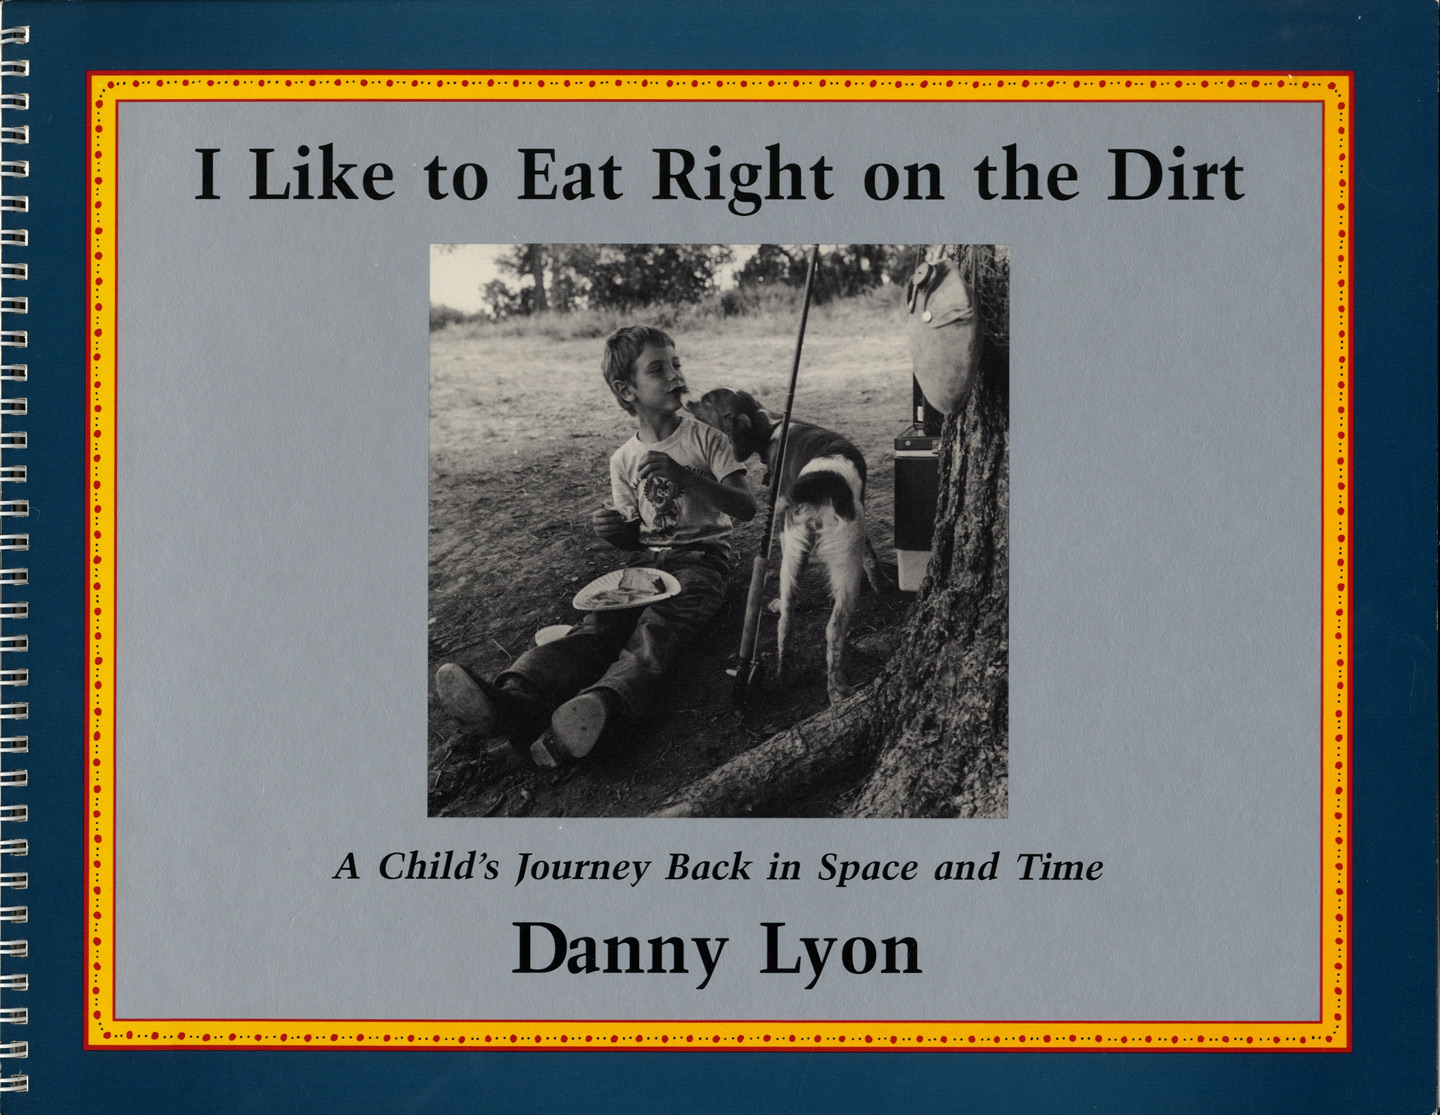 Danny Lyon: I Like to Eat Right on the Dirt: A Child's Journey Back in Space and Time [SIGNED]